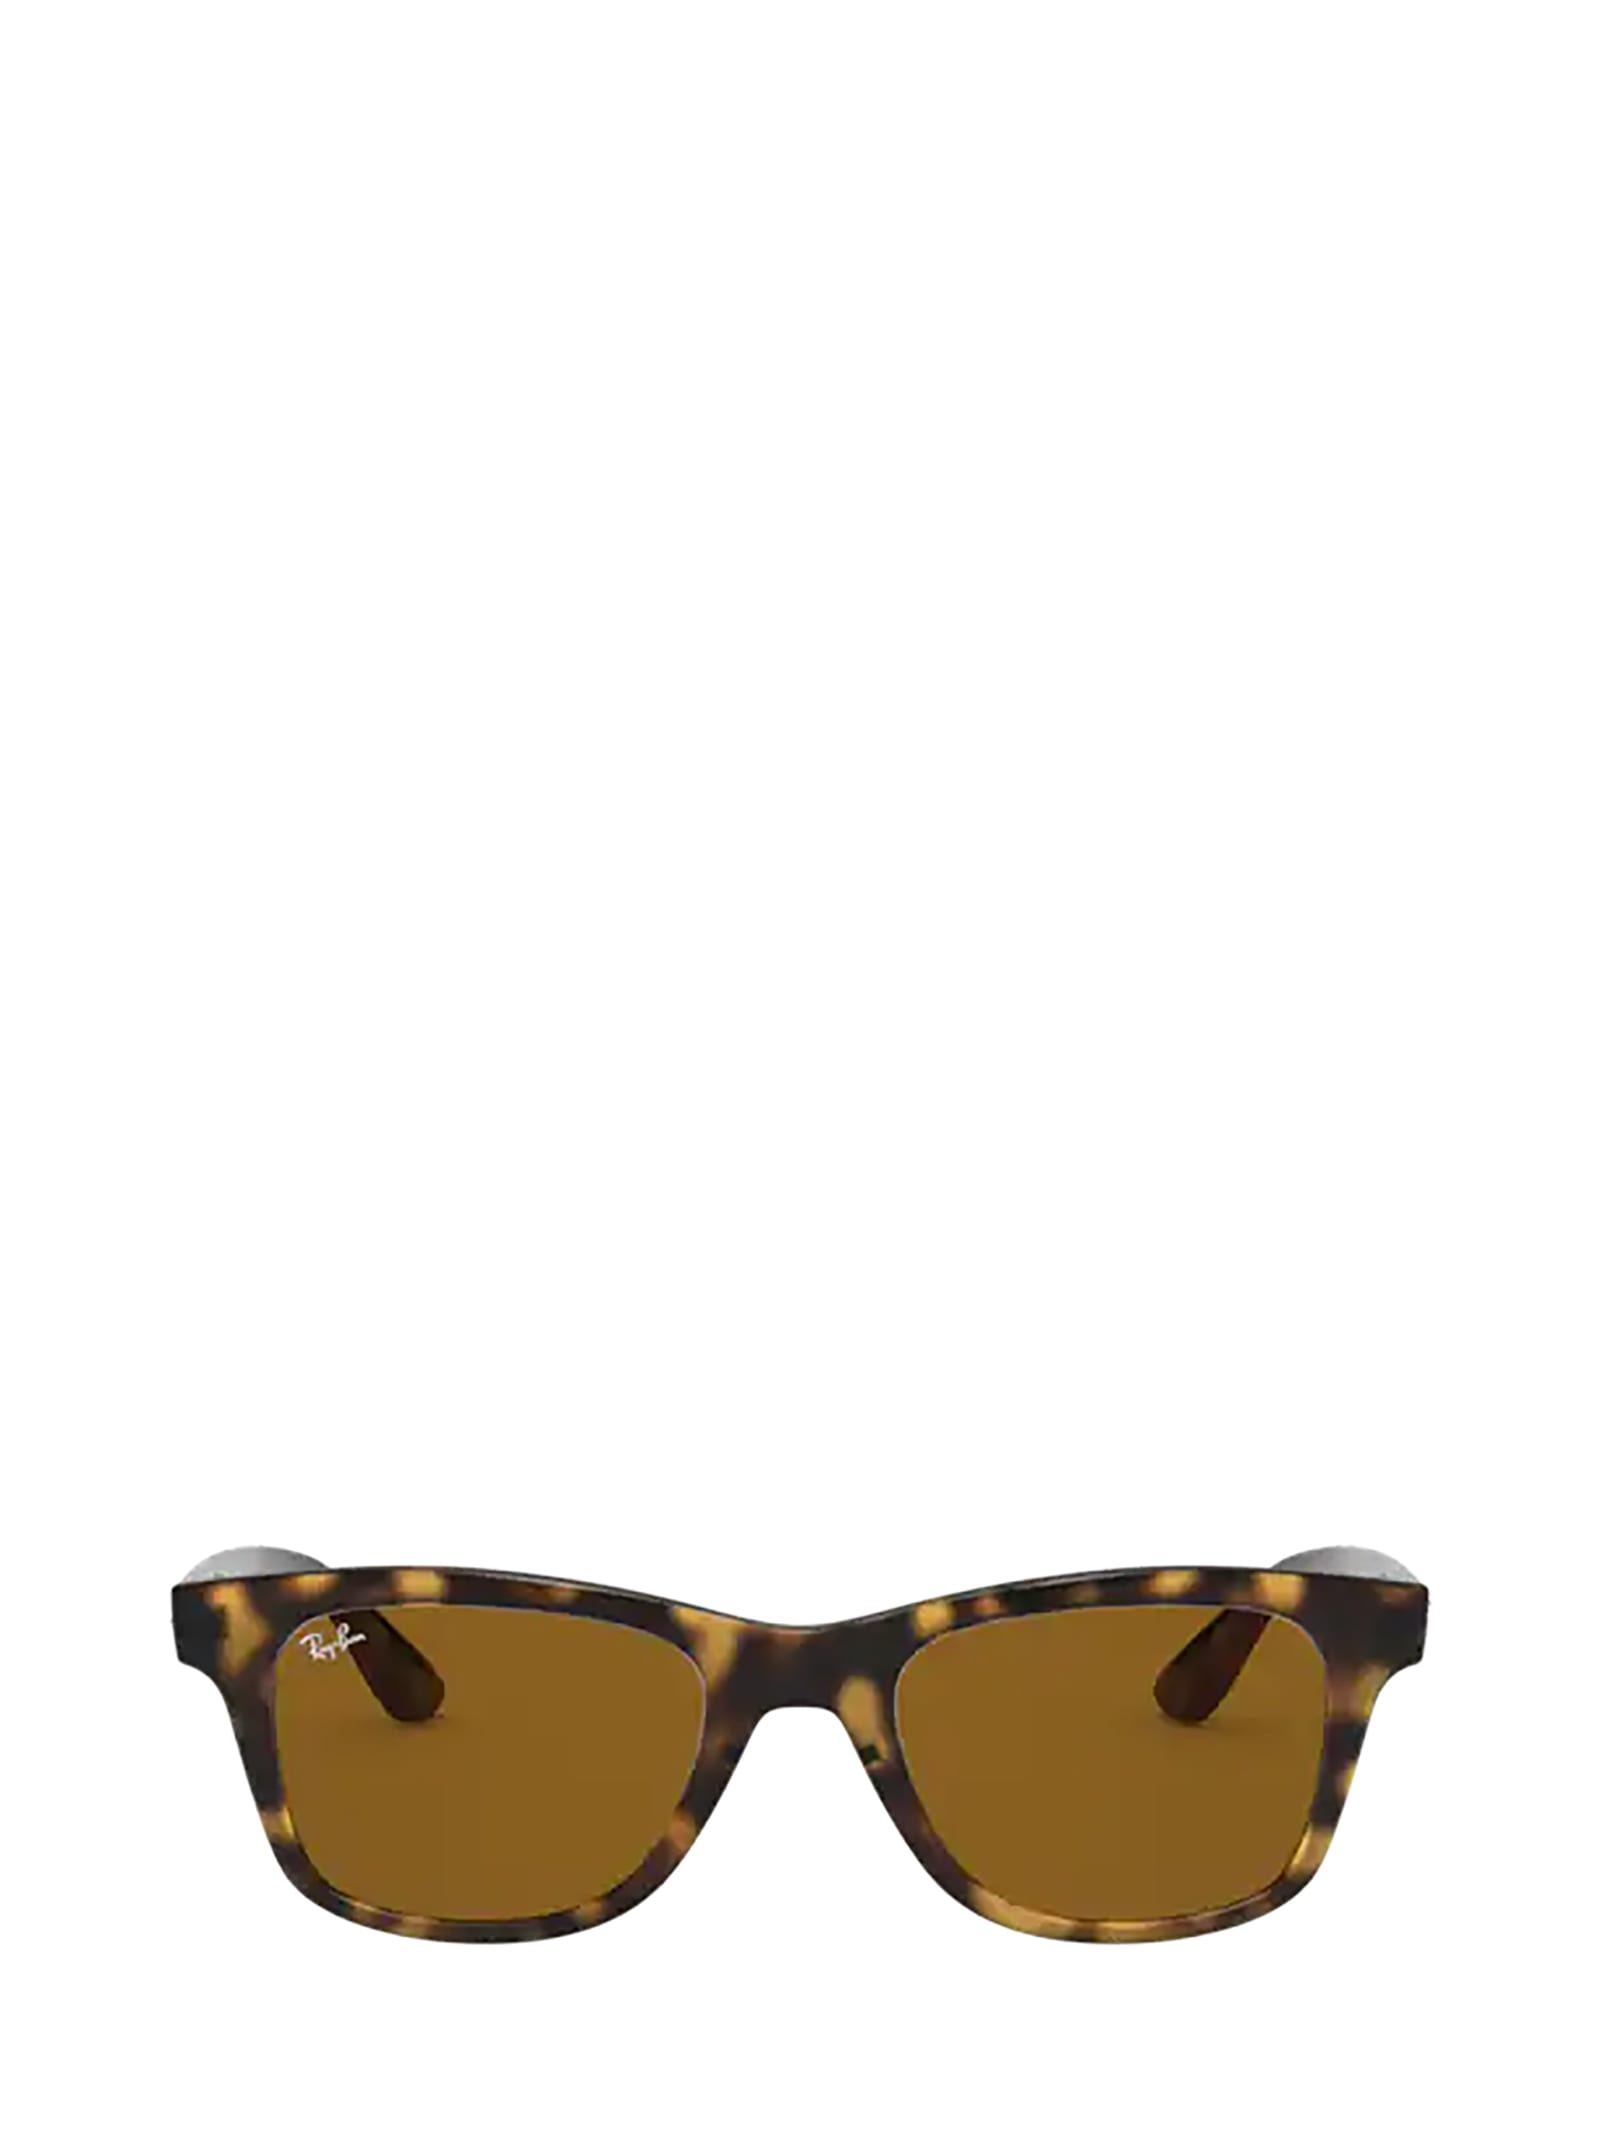 Ray-Ban Ray-ban Rb4640 Light Havana Sunglasses